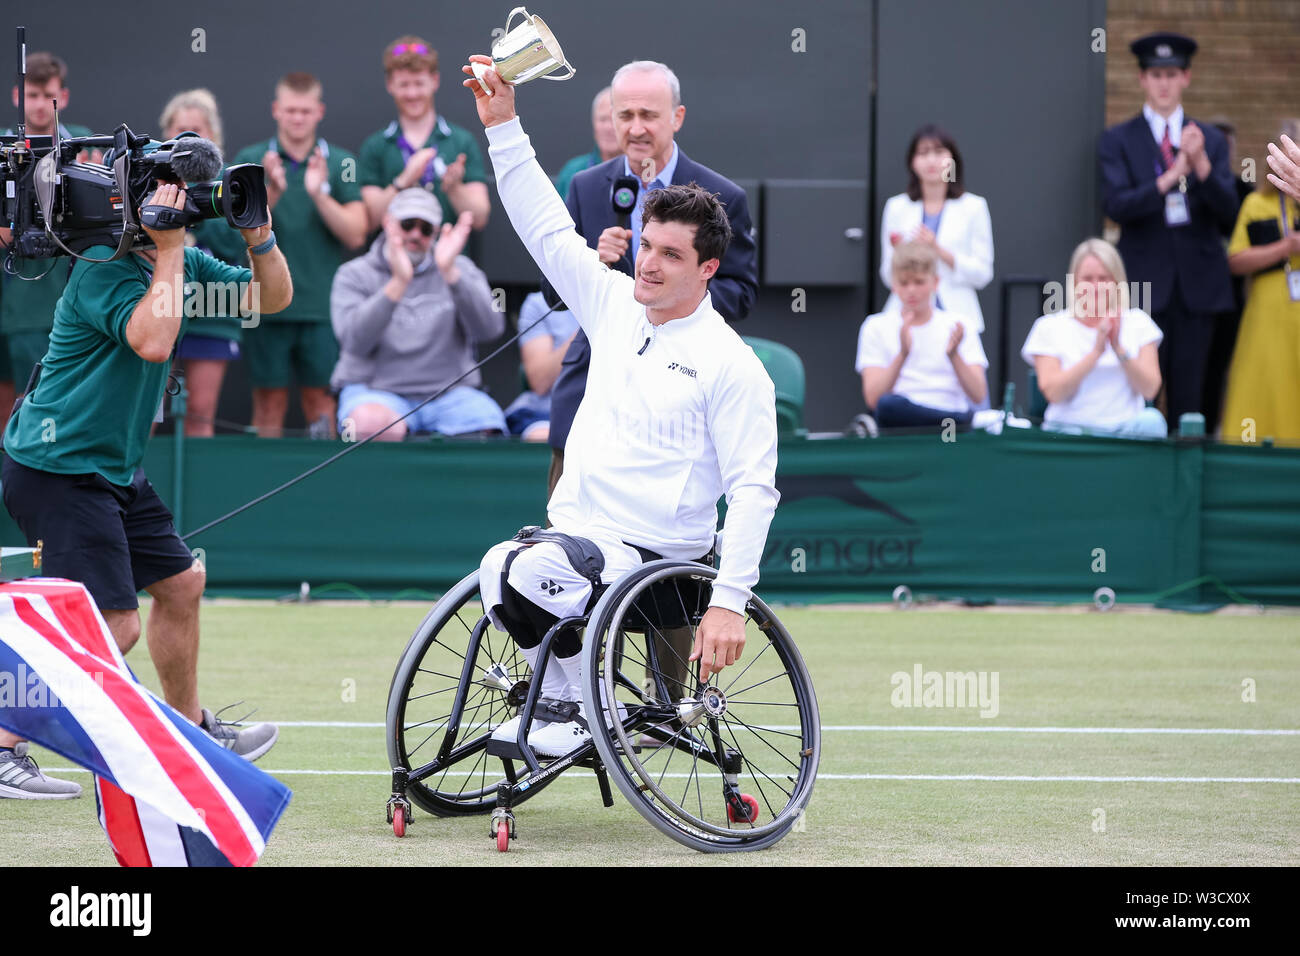 Wimbledon, London, UK. 14th July 2019. Gustavo Fernandez of Argentina poses with the trophy after winning the men's wheelchair singles final match of the Wimbledon Lawn Tennis Championships against Shingo Kunieda of Japan at the All England Lawn Tennis and Croquet Club in London, England on July 14, 2019. Credit: AFLO/Alamy Live News - Stock Image